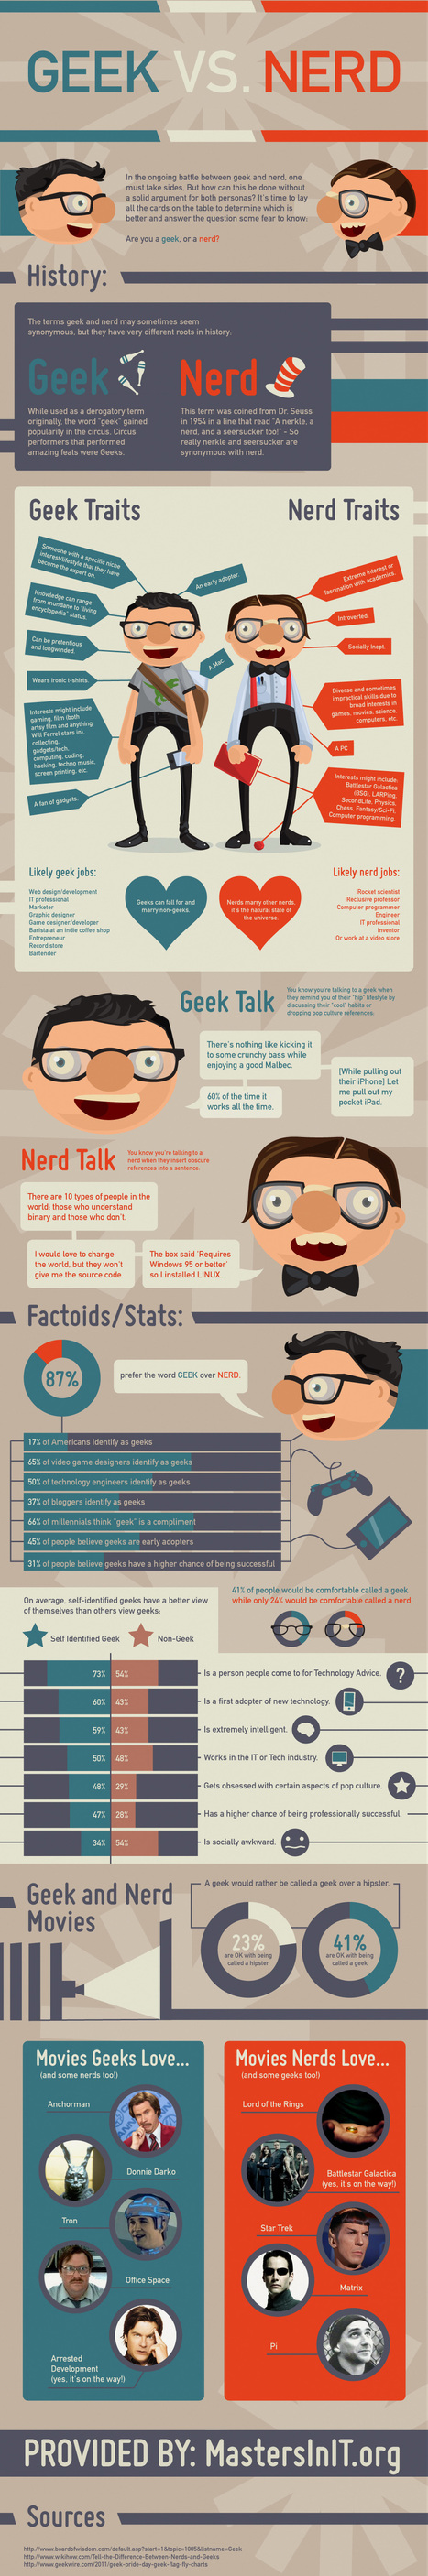 Are you a Geek or Nerd? - [Infographic] | Opening up education | Scoop.it